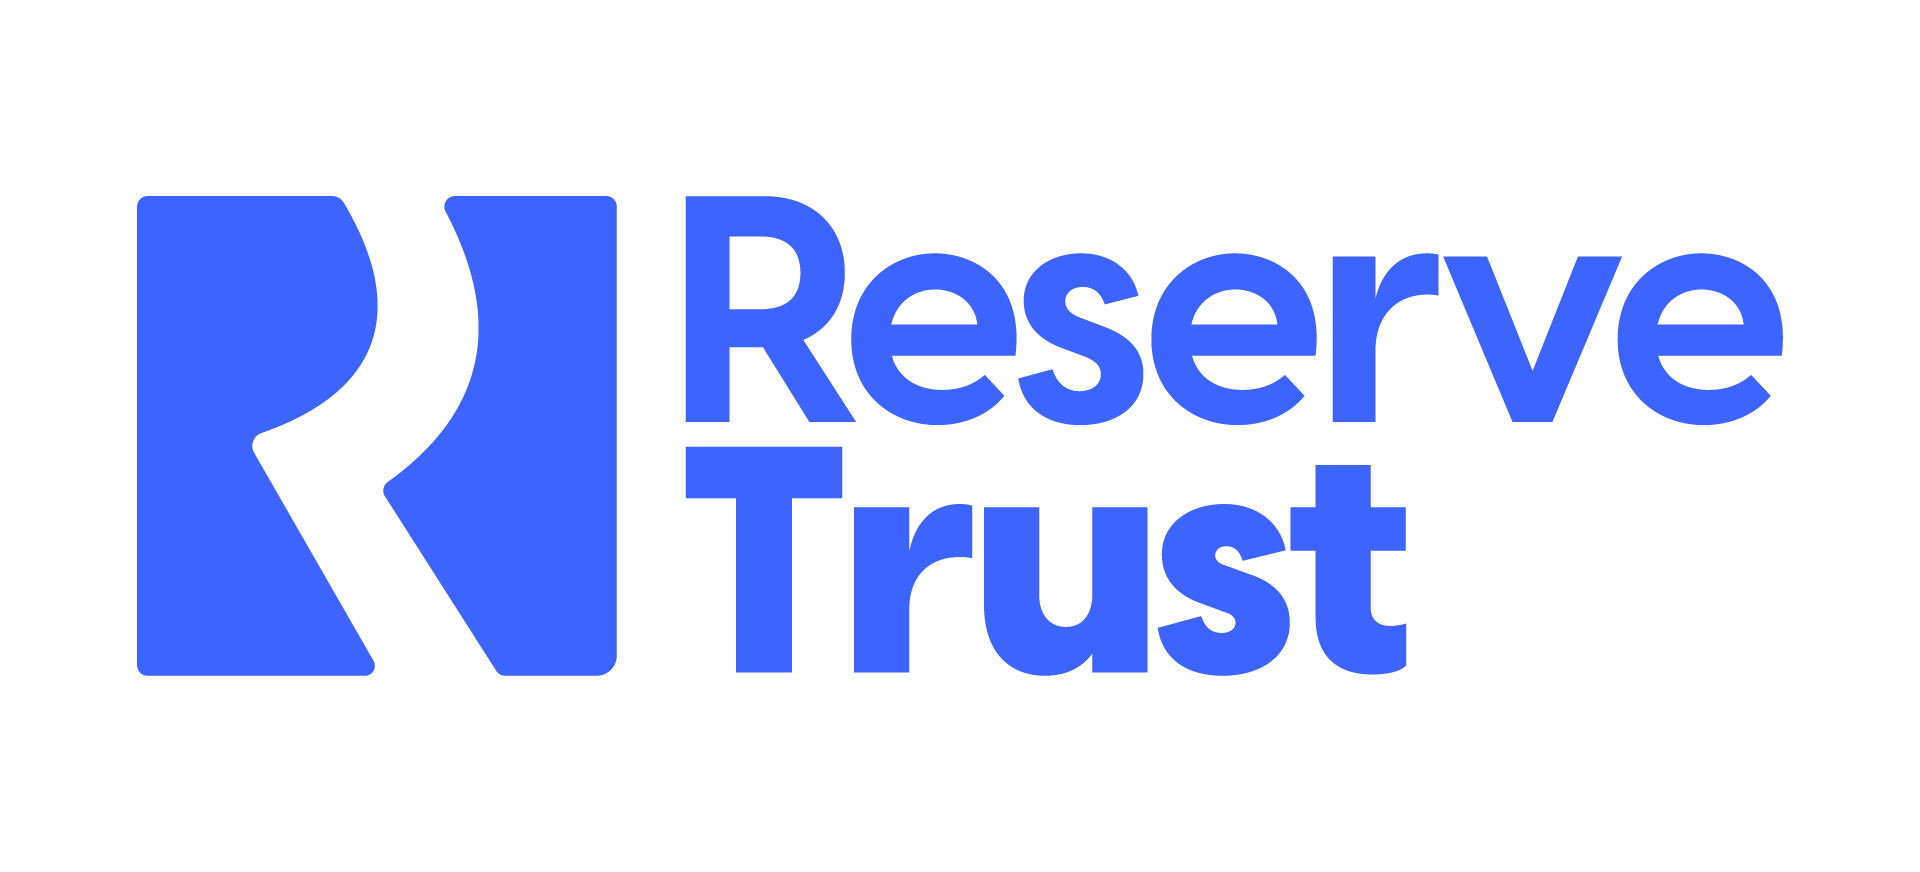 The Reserve Trust Company logo